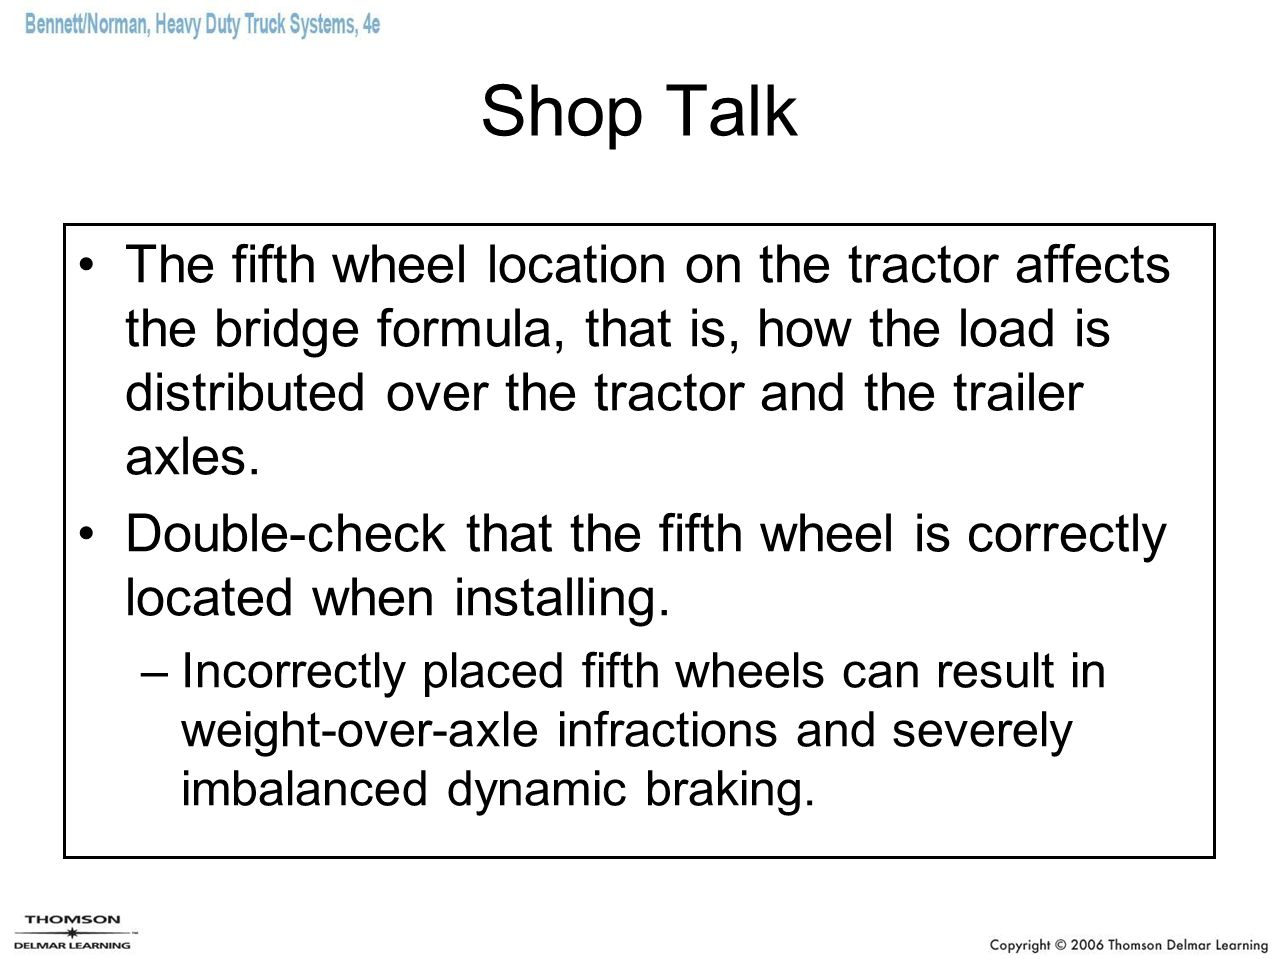 Shop Talk The fifth wheel location on the tractor affects the bridge formula, that is, how the load is distributed over the tractor and the trailer ax